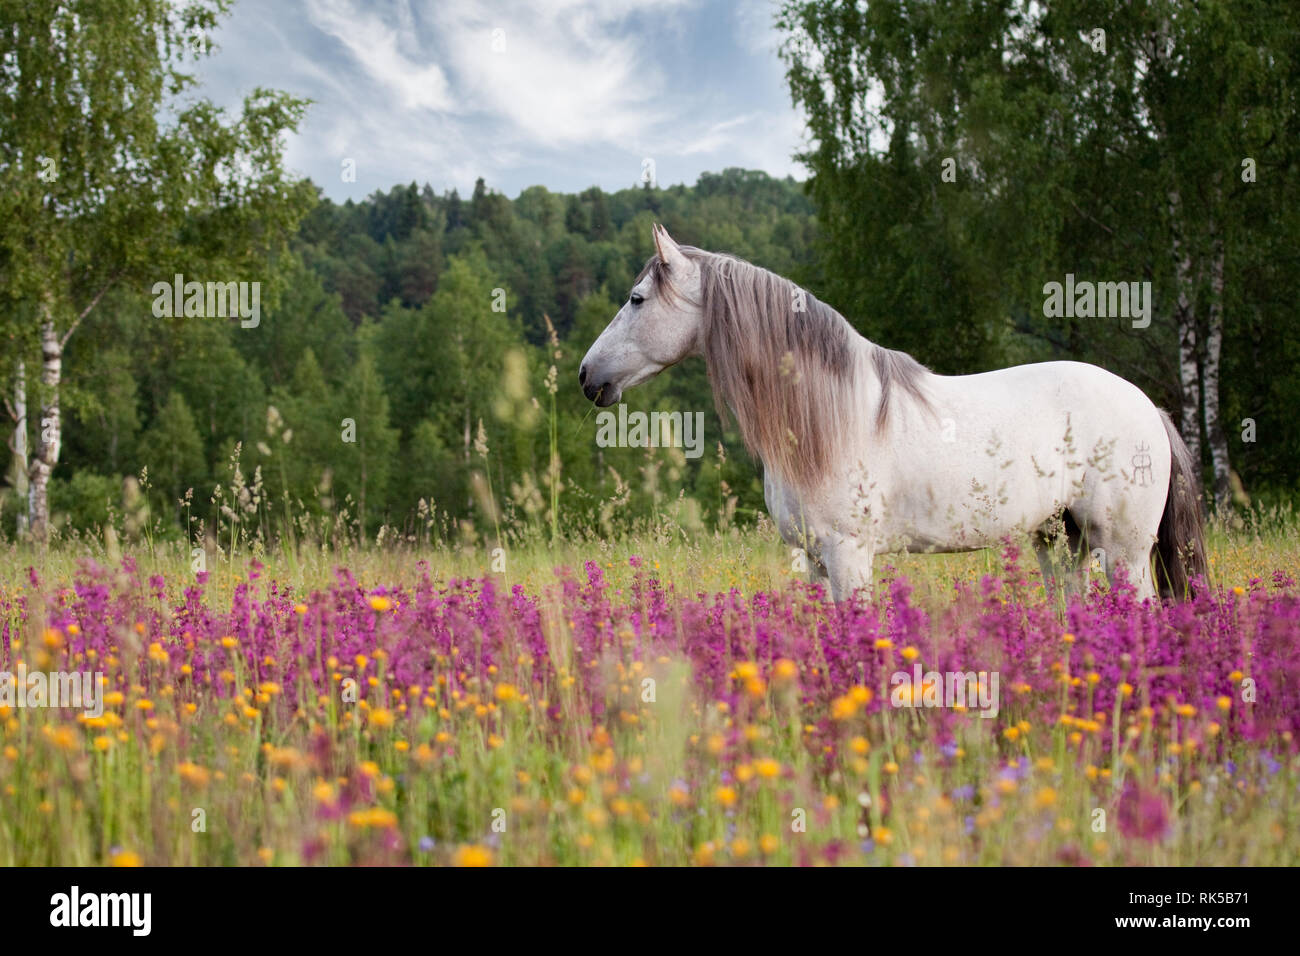 White spanish horse with long mane stand in the violet field in summer. Horizontal, side view. Stock Photo